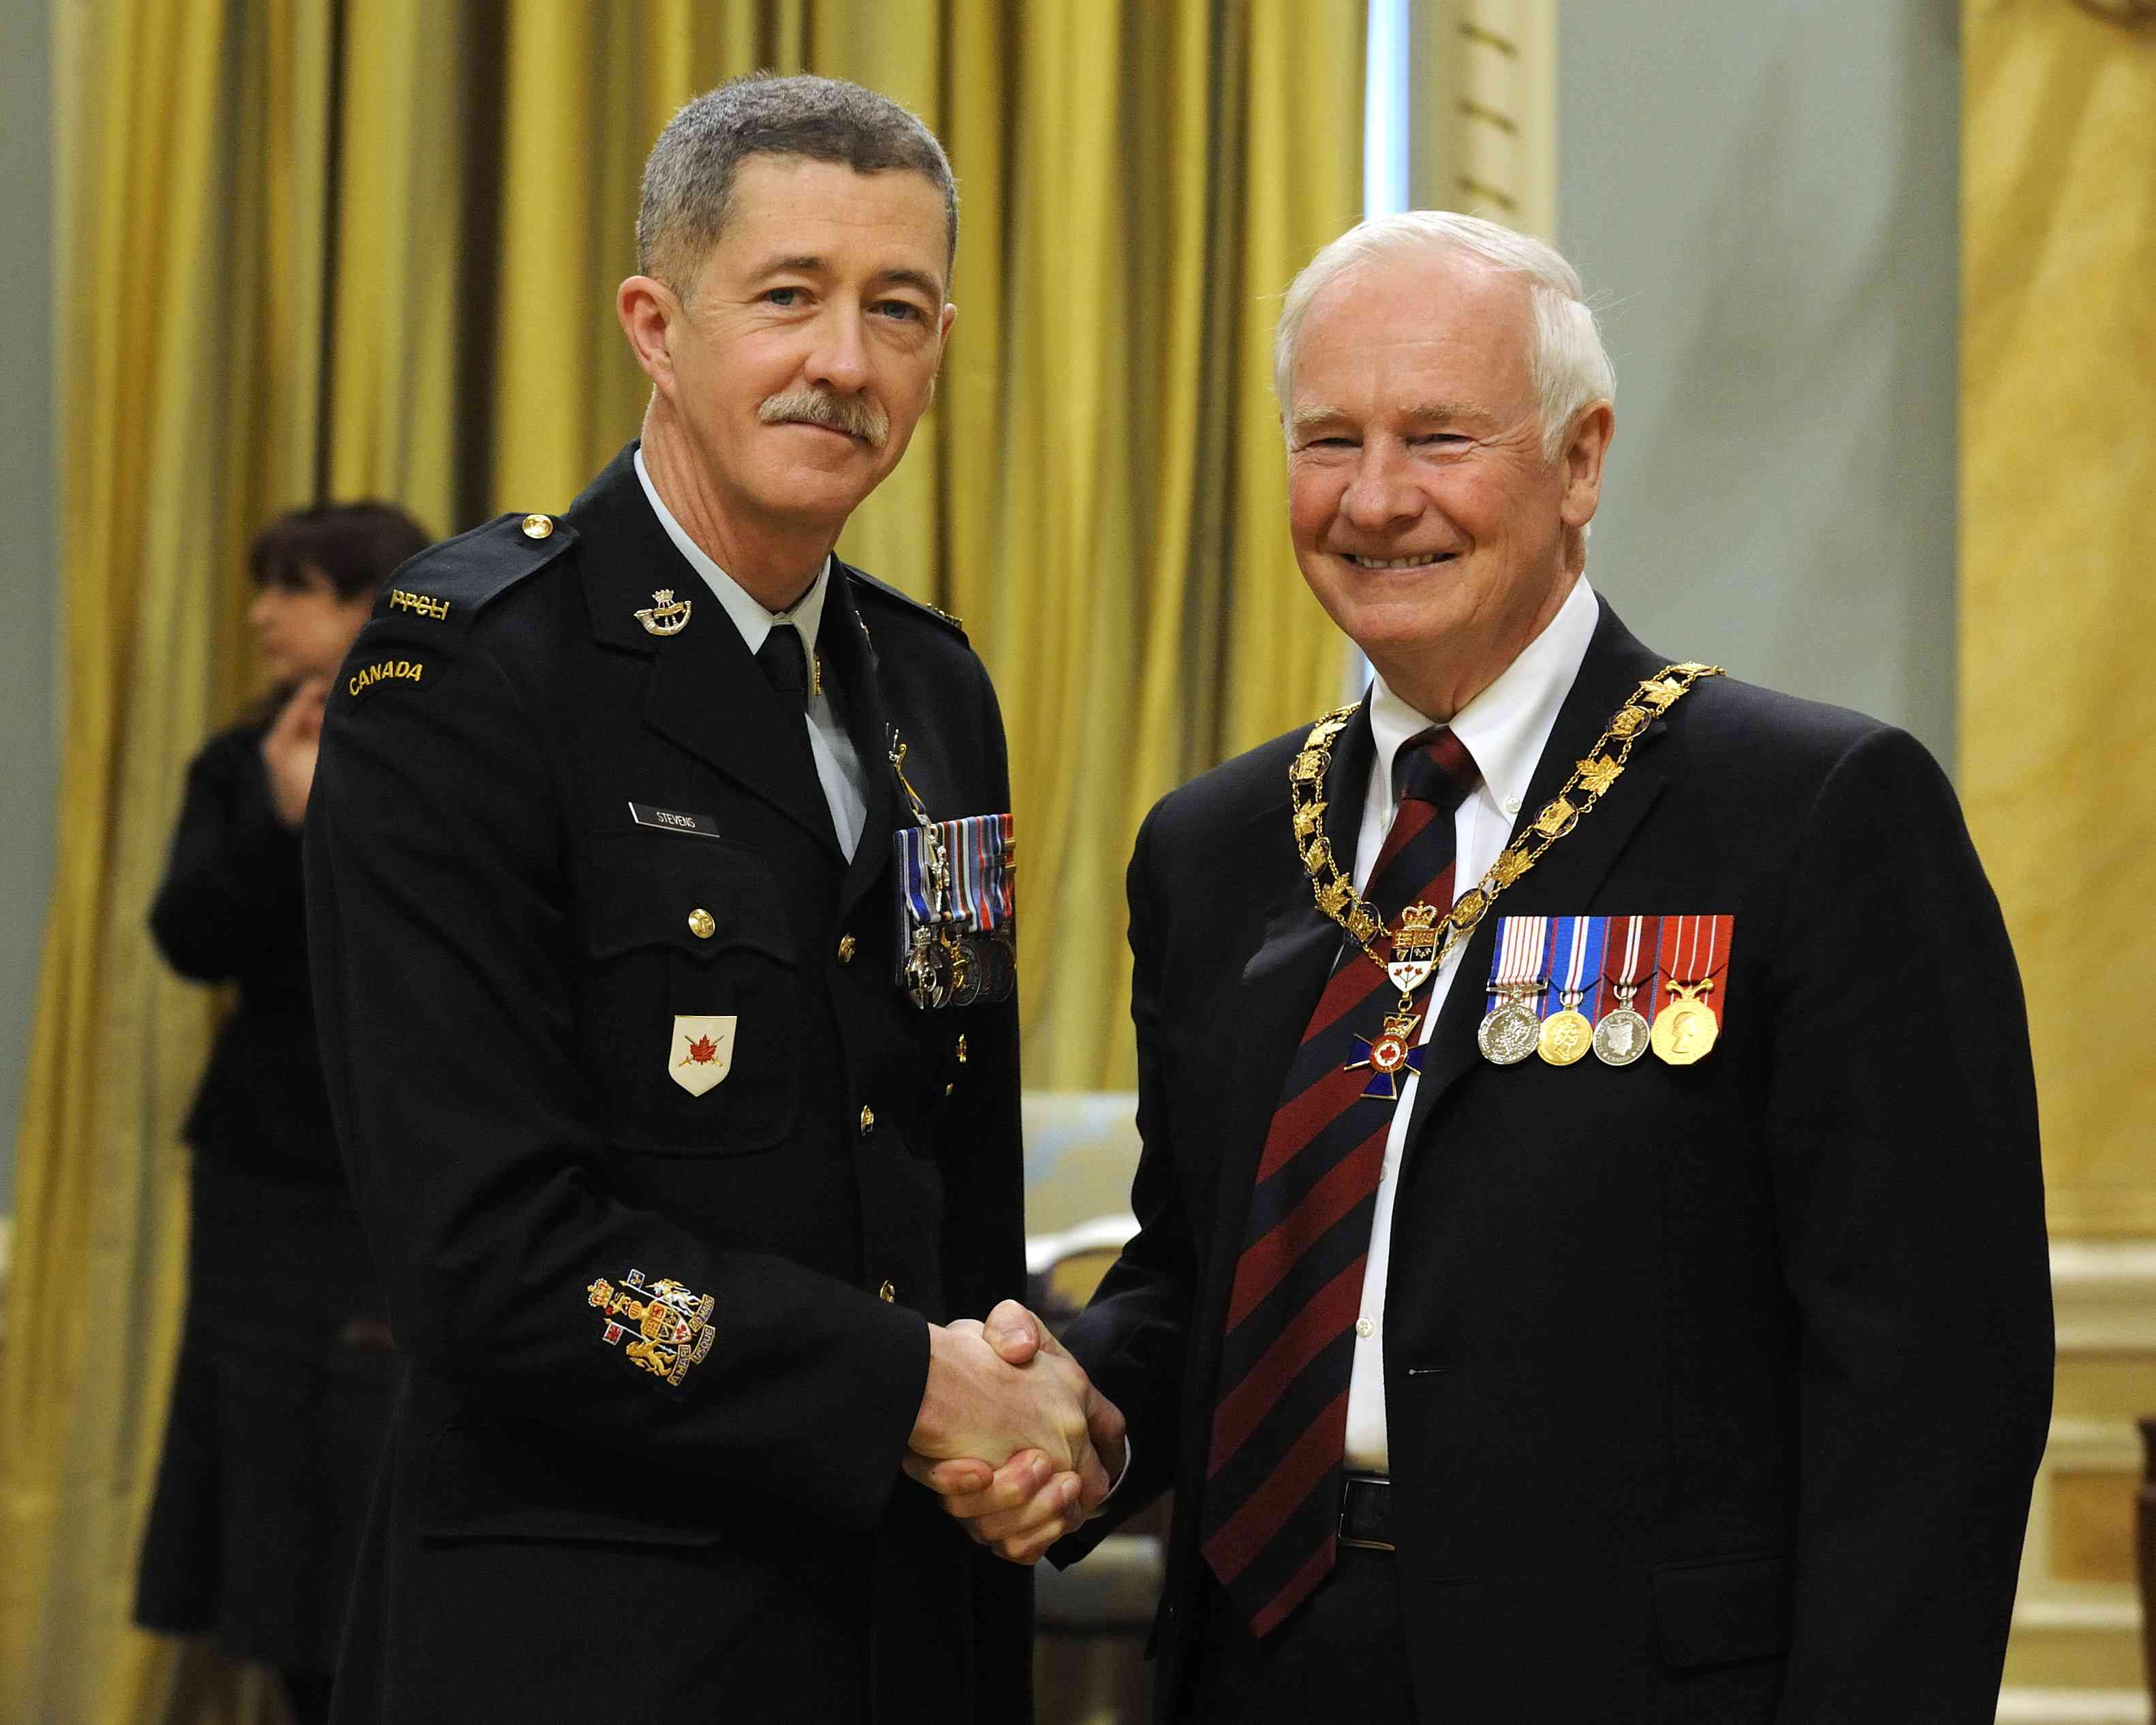 His Excellency presented the Order of Military Merit at the Member level (M.M.M.) to Chief Warrant Officer Shawn Stevens, M.M.M., M.S.C., M.S.M., C.D., 1st Battalion, Princess Patricia's Canadian Light Infantry, Edmonton, Alta.